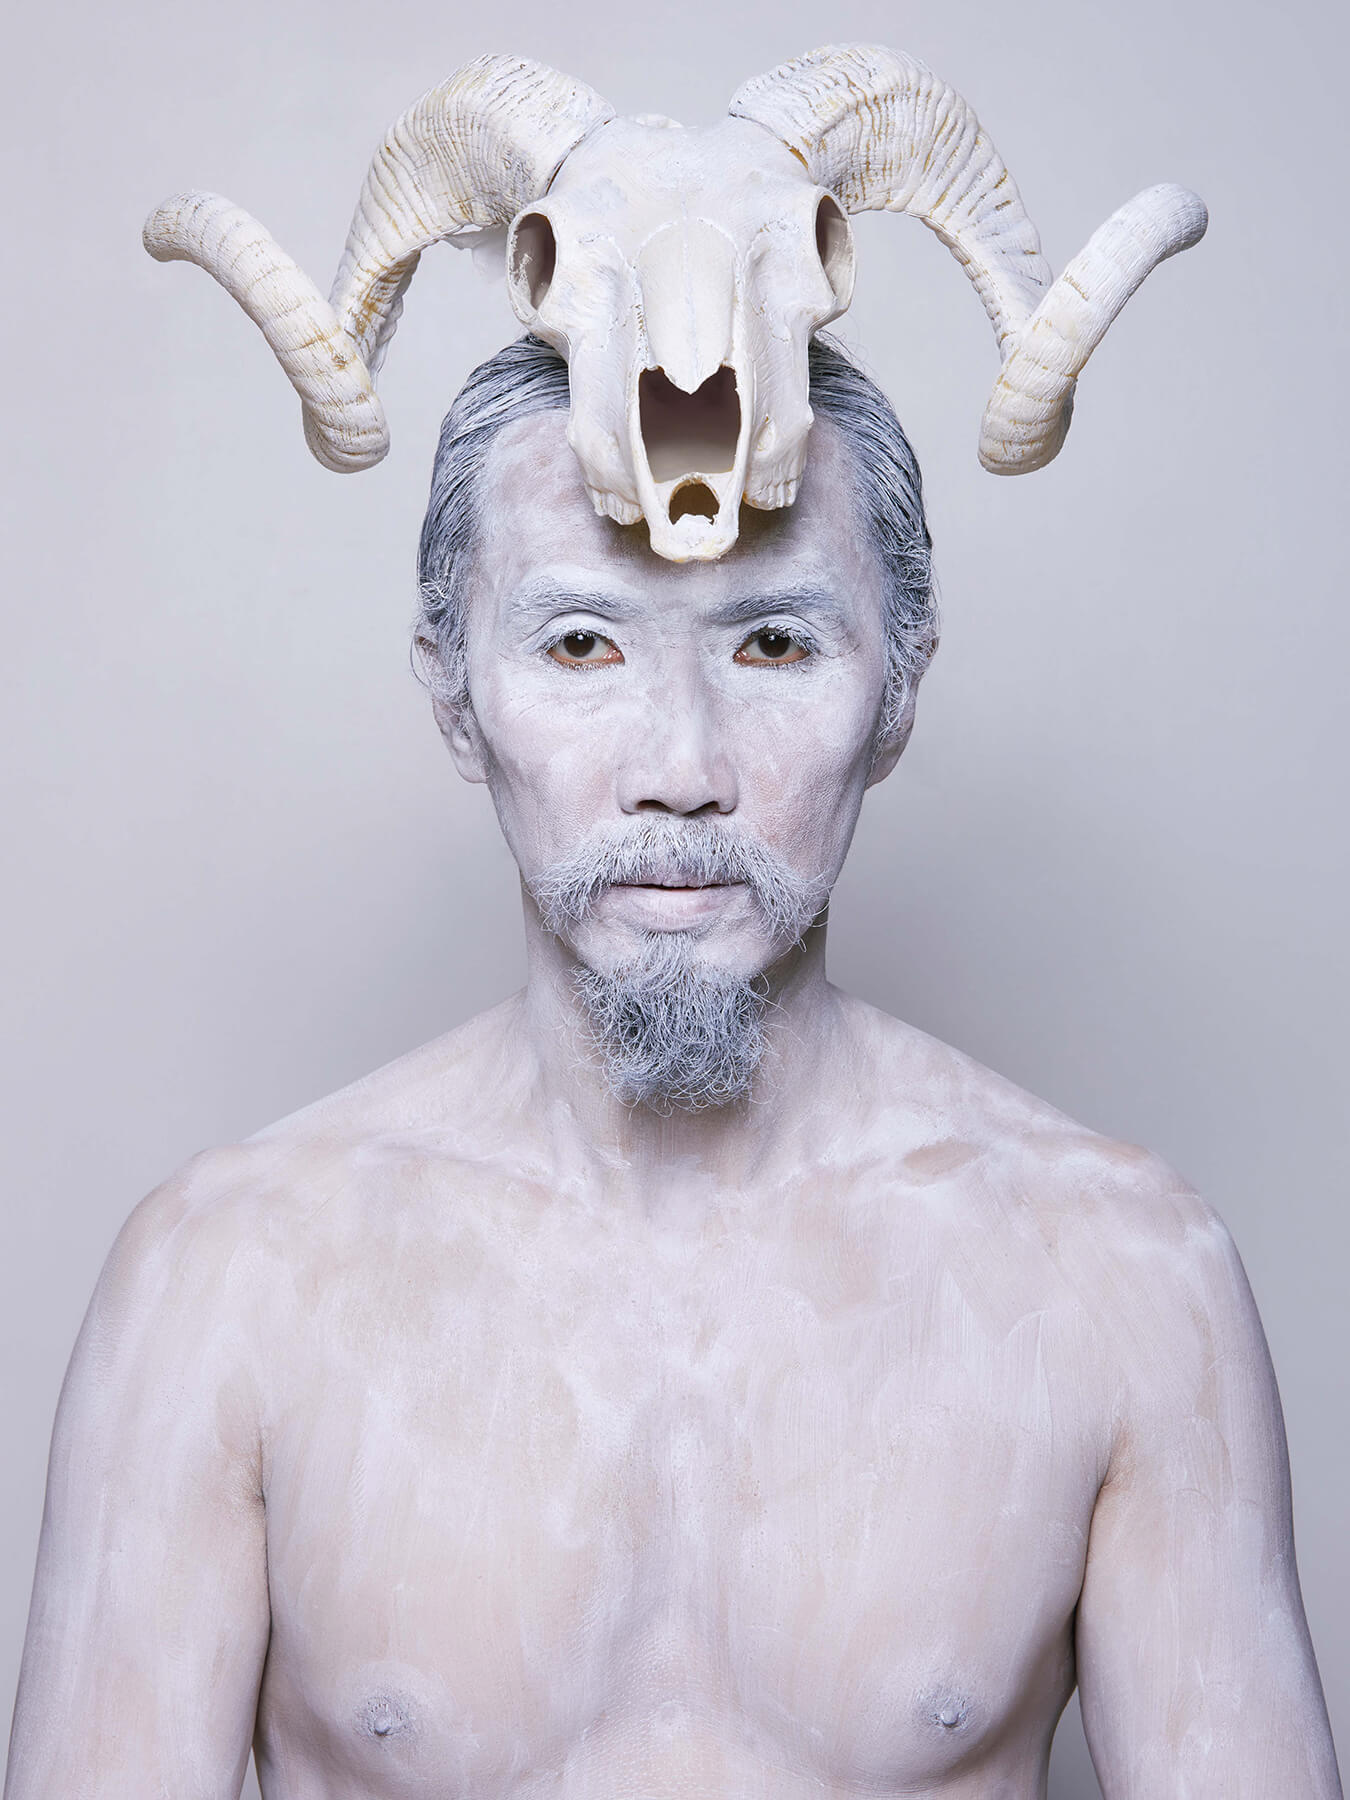 16 Nov 2017 Derong is covered in white body paint and has a bull skull on his head